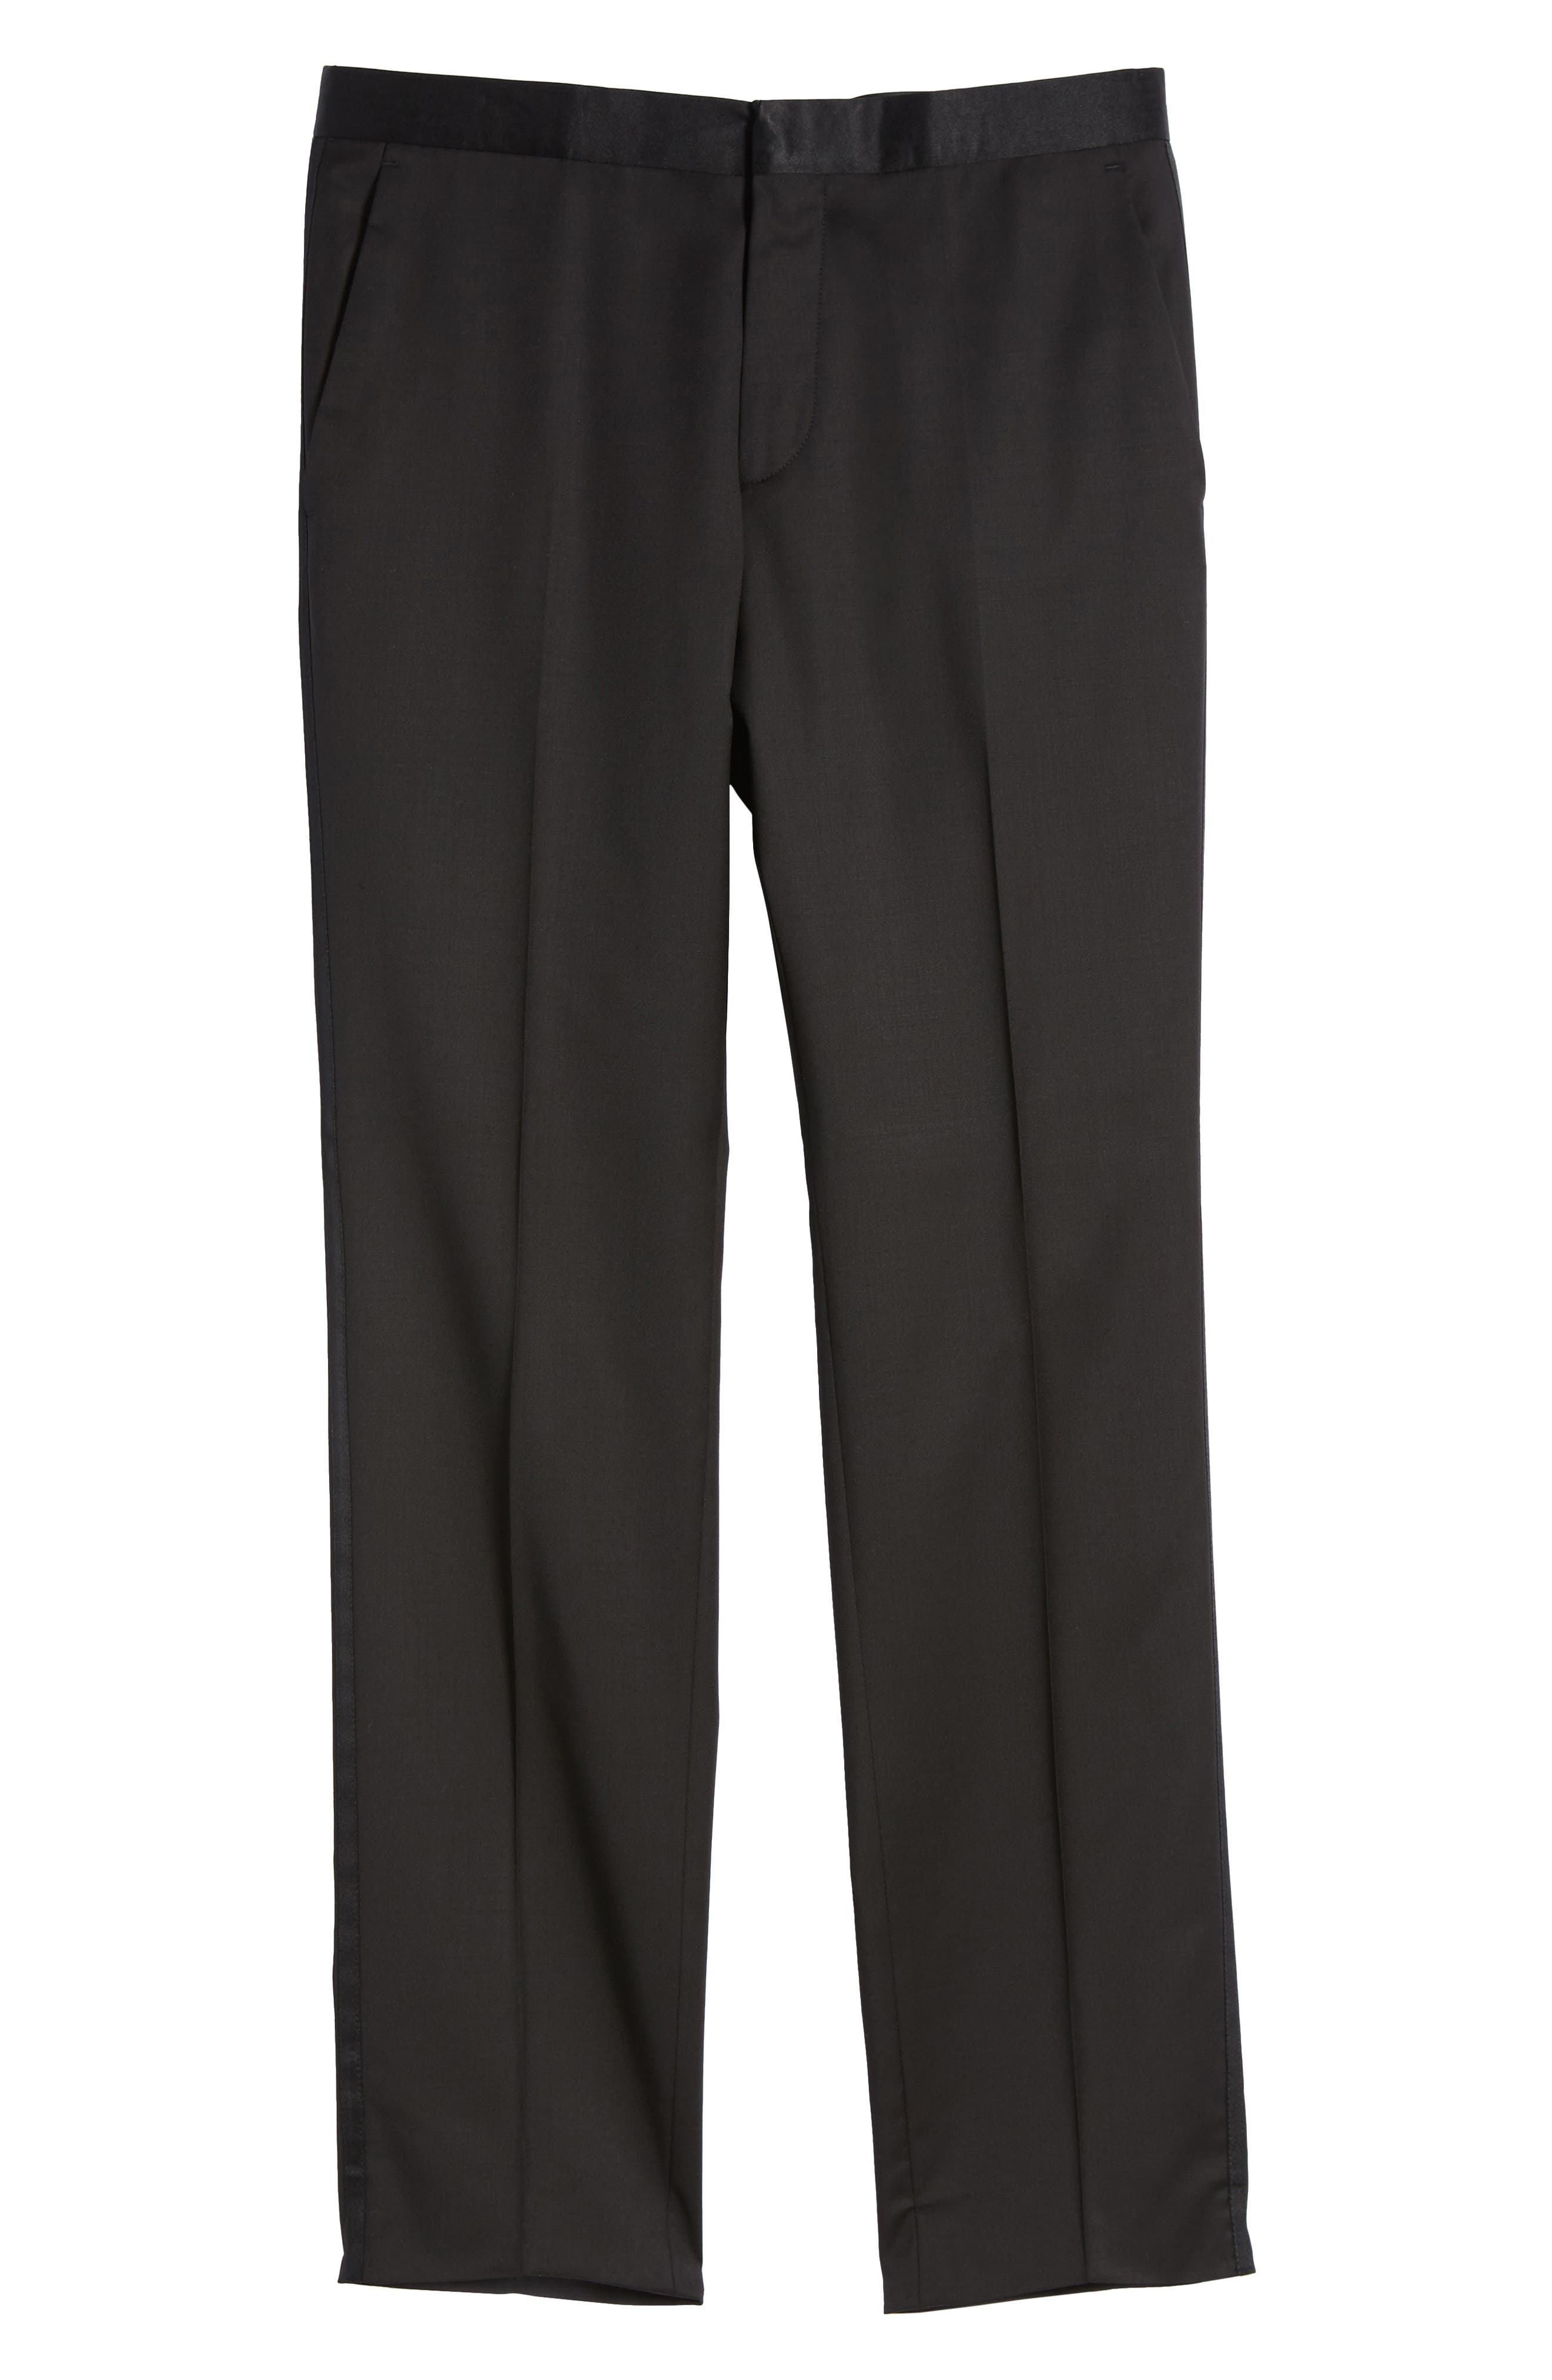 BOSS, Gilan CYL Flat Front Wool Trousers, Alternate thumbnail 6, color, BLACK